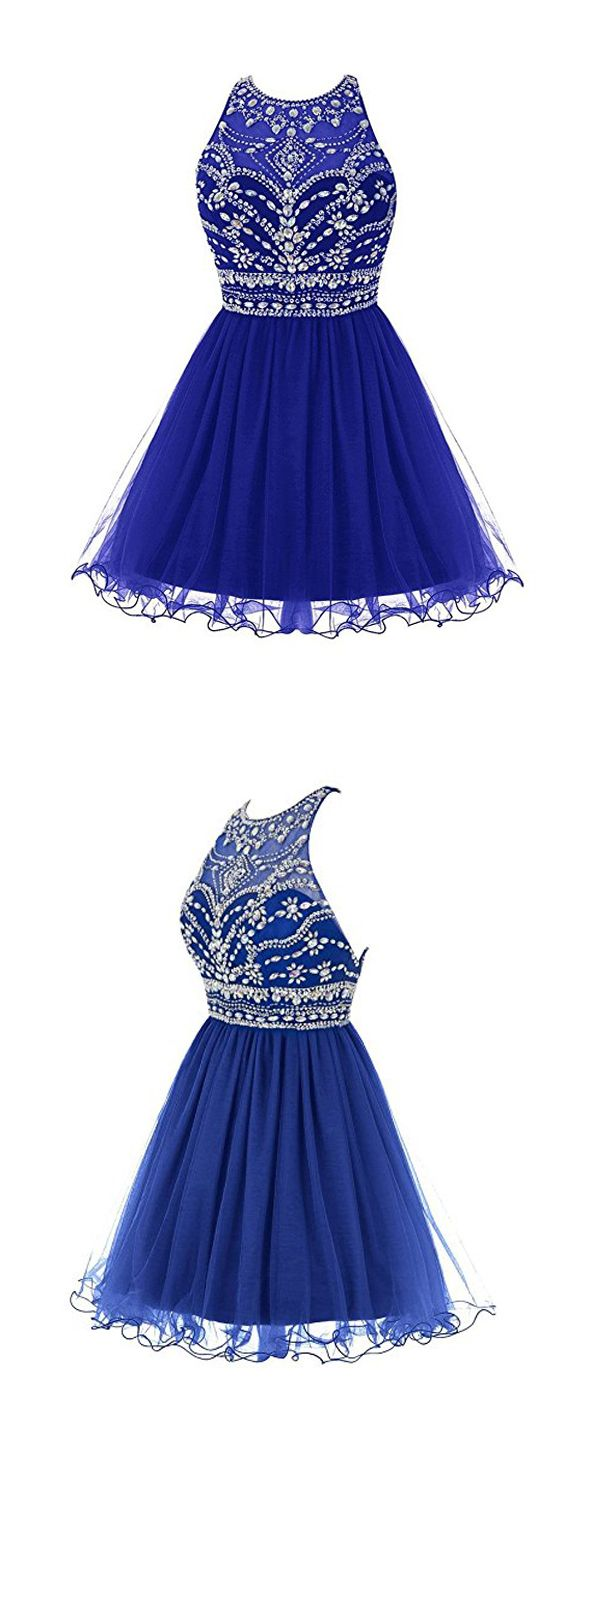 Royal Bule Tulle Homecoming Dresses 2016 Short Prom Gowns PG045,Homecoming Dresses,Prom Dresses,Short Homecoming Dresses,Short Prom dress,Party Dresses